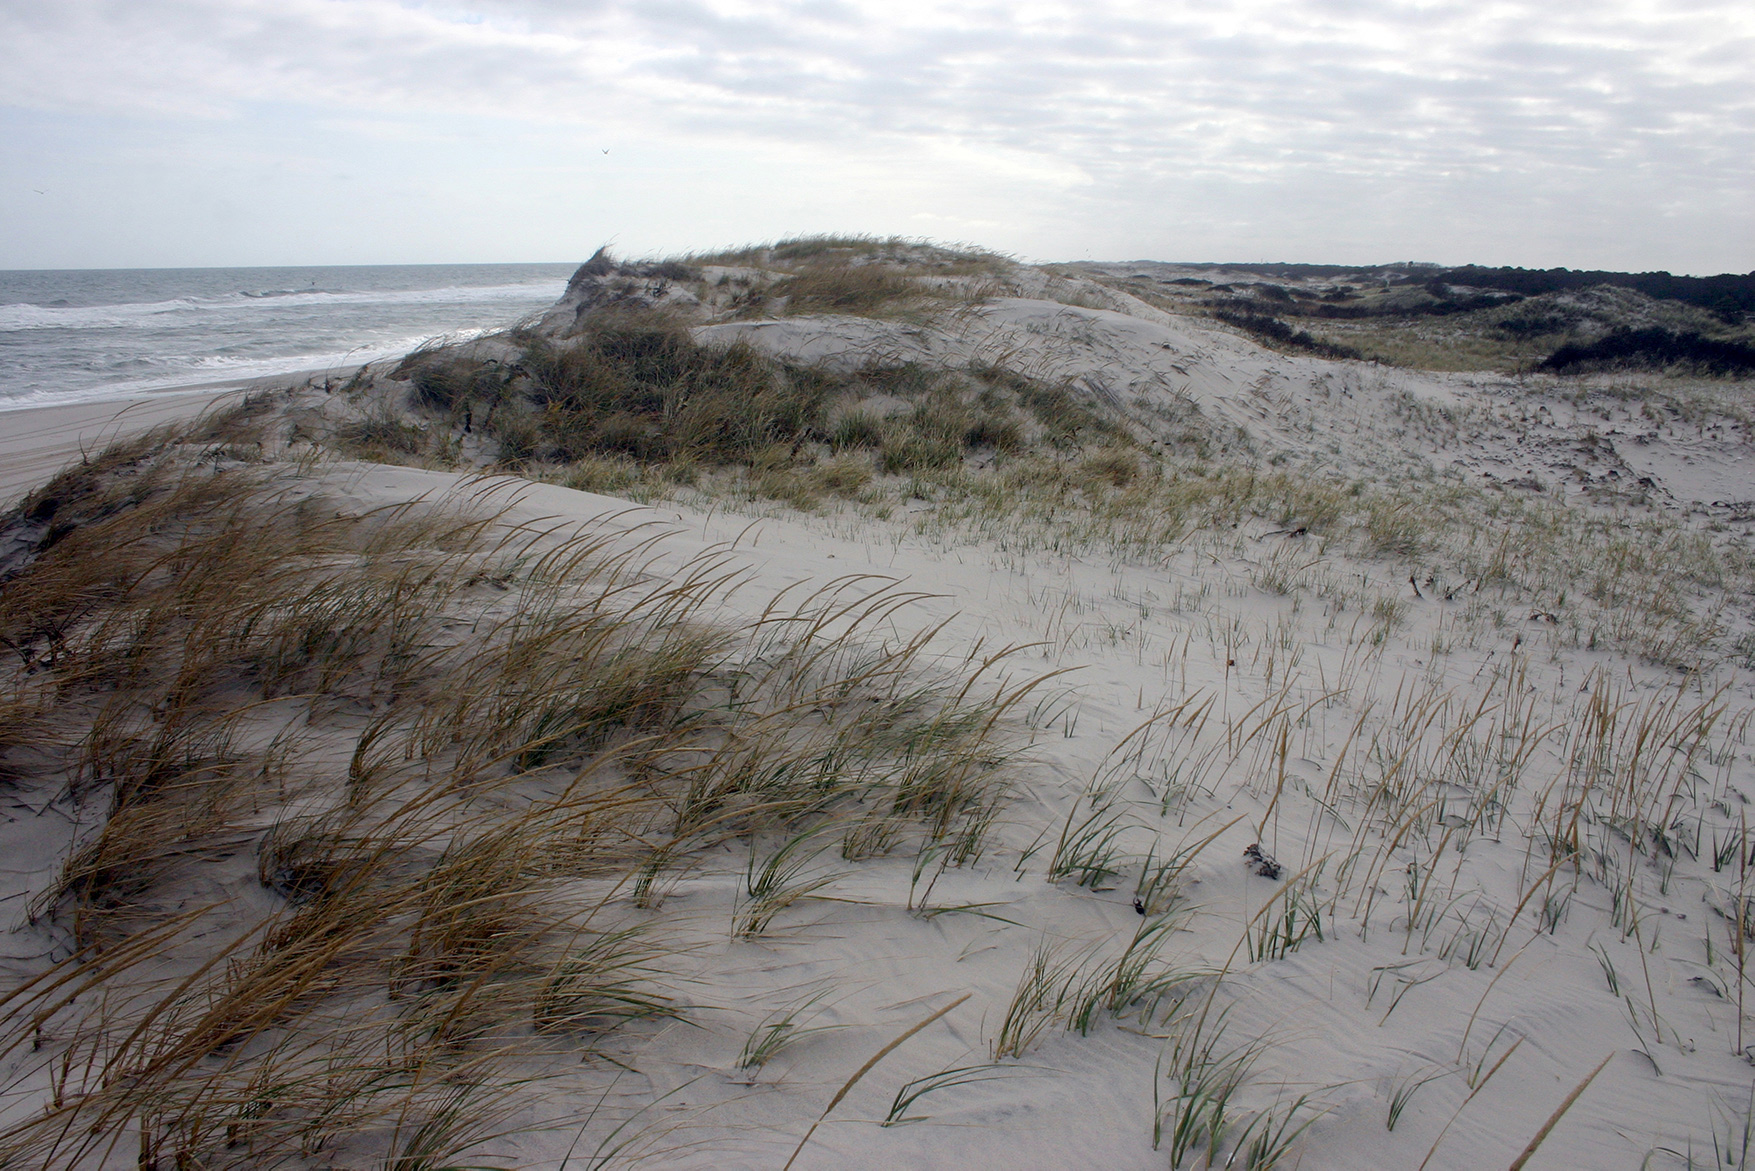 10 Great places to take a walk - Sandy Hook